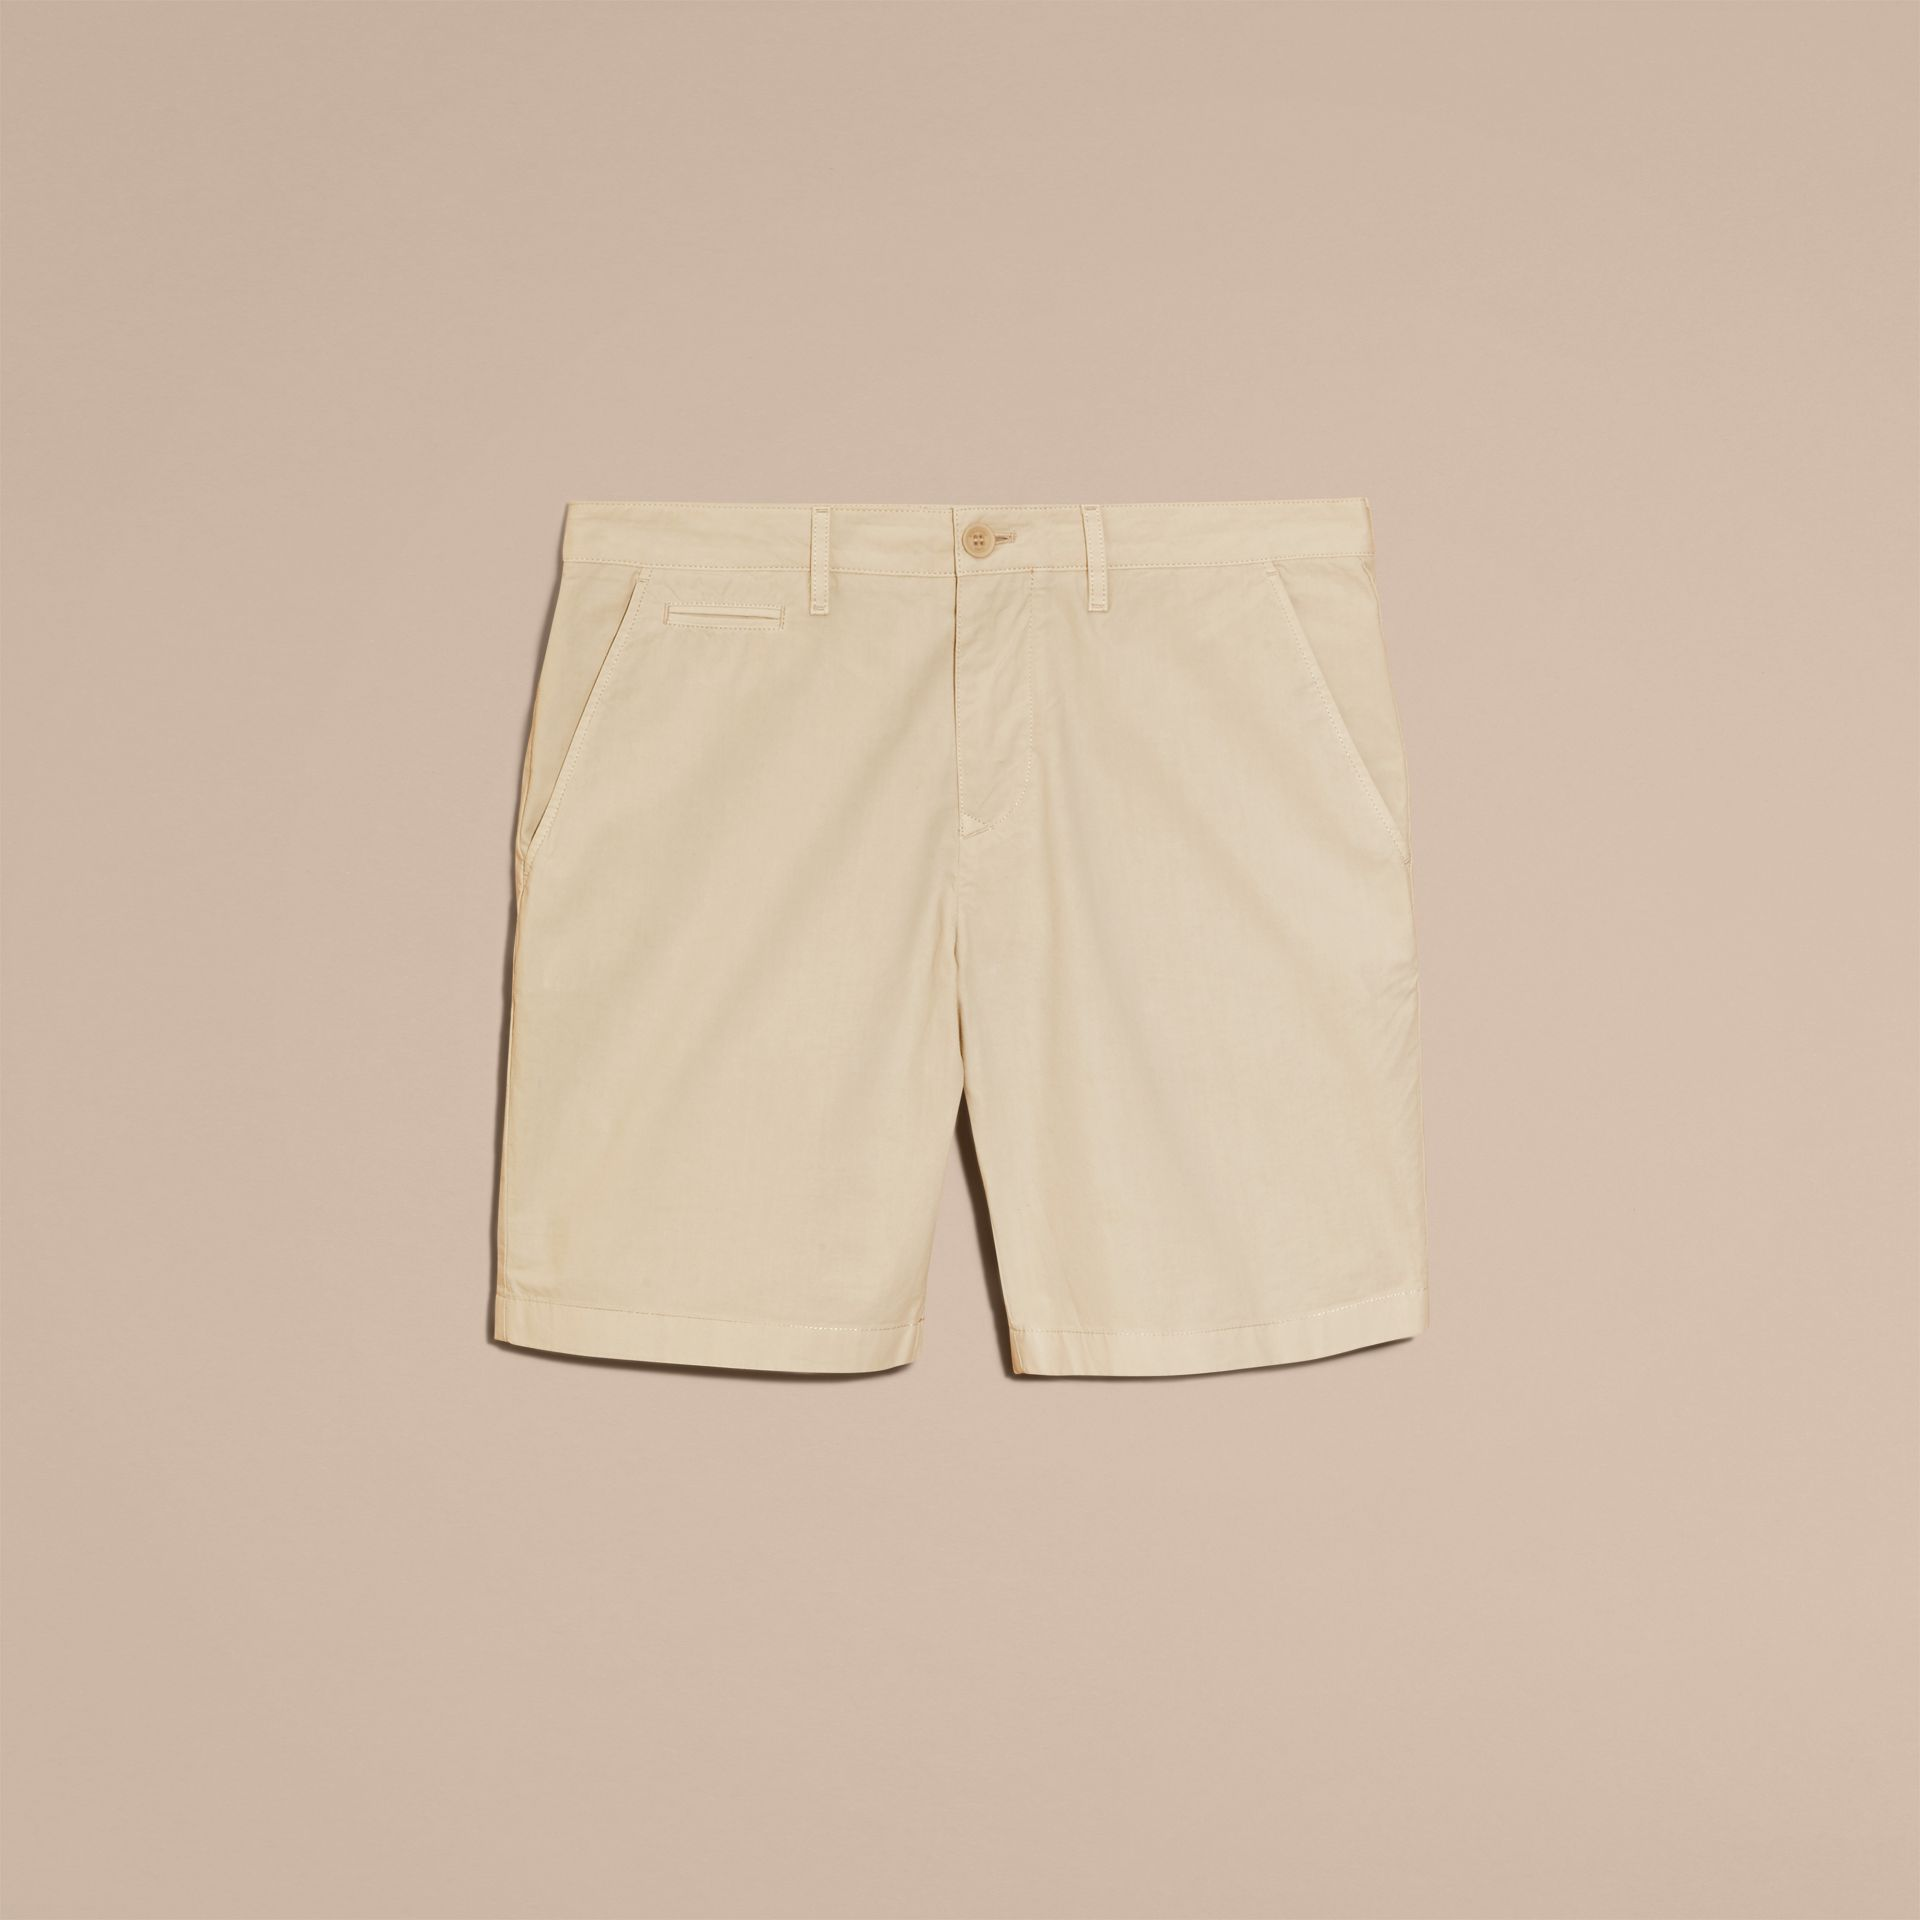 Cotton Poplin Chino Shorts in Stone - Men | Burberry - gallery image 4